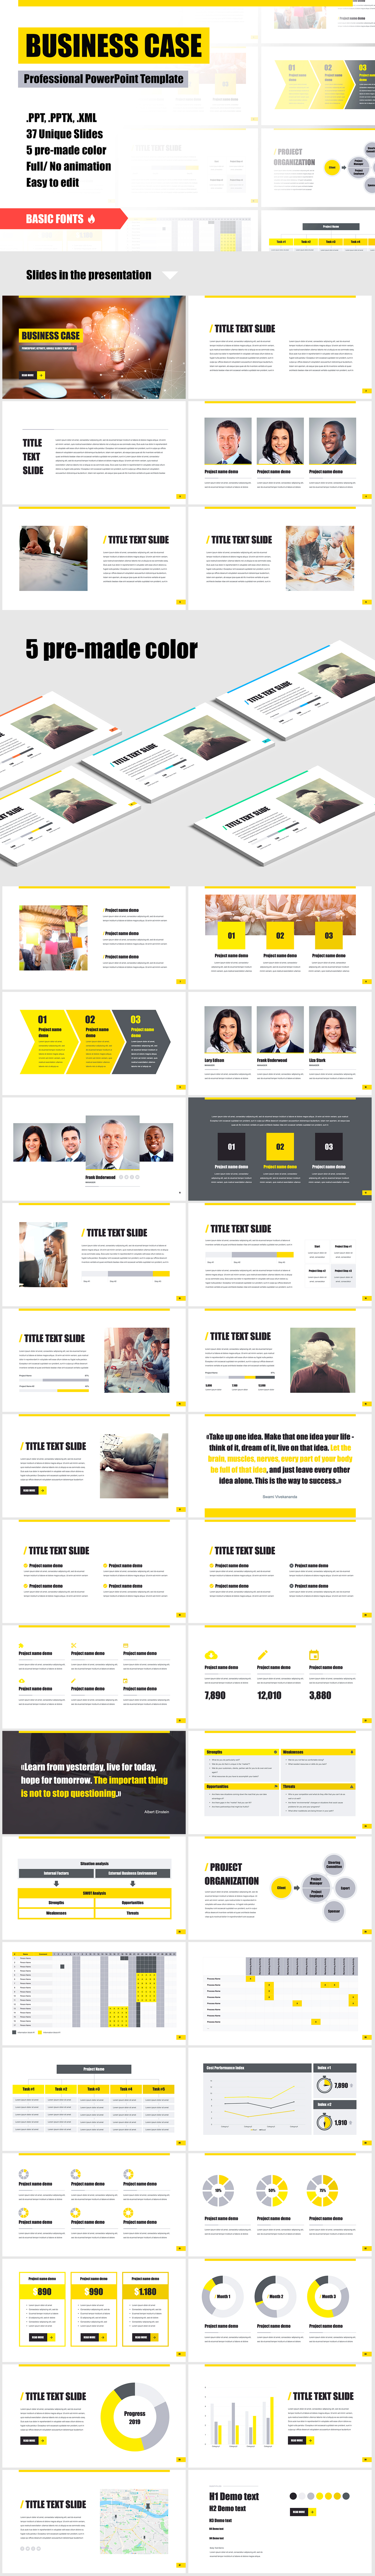 business-case-template-ppt